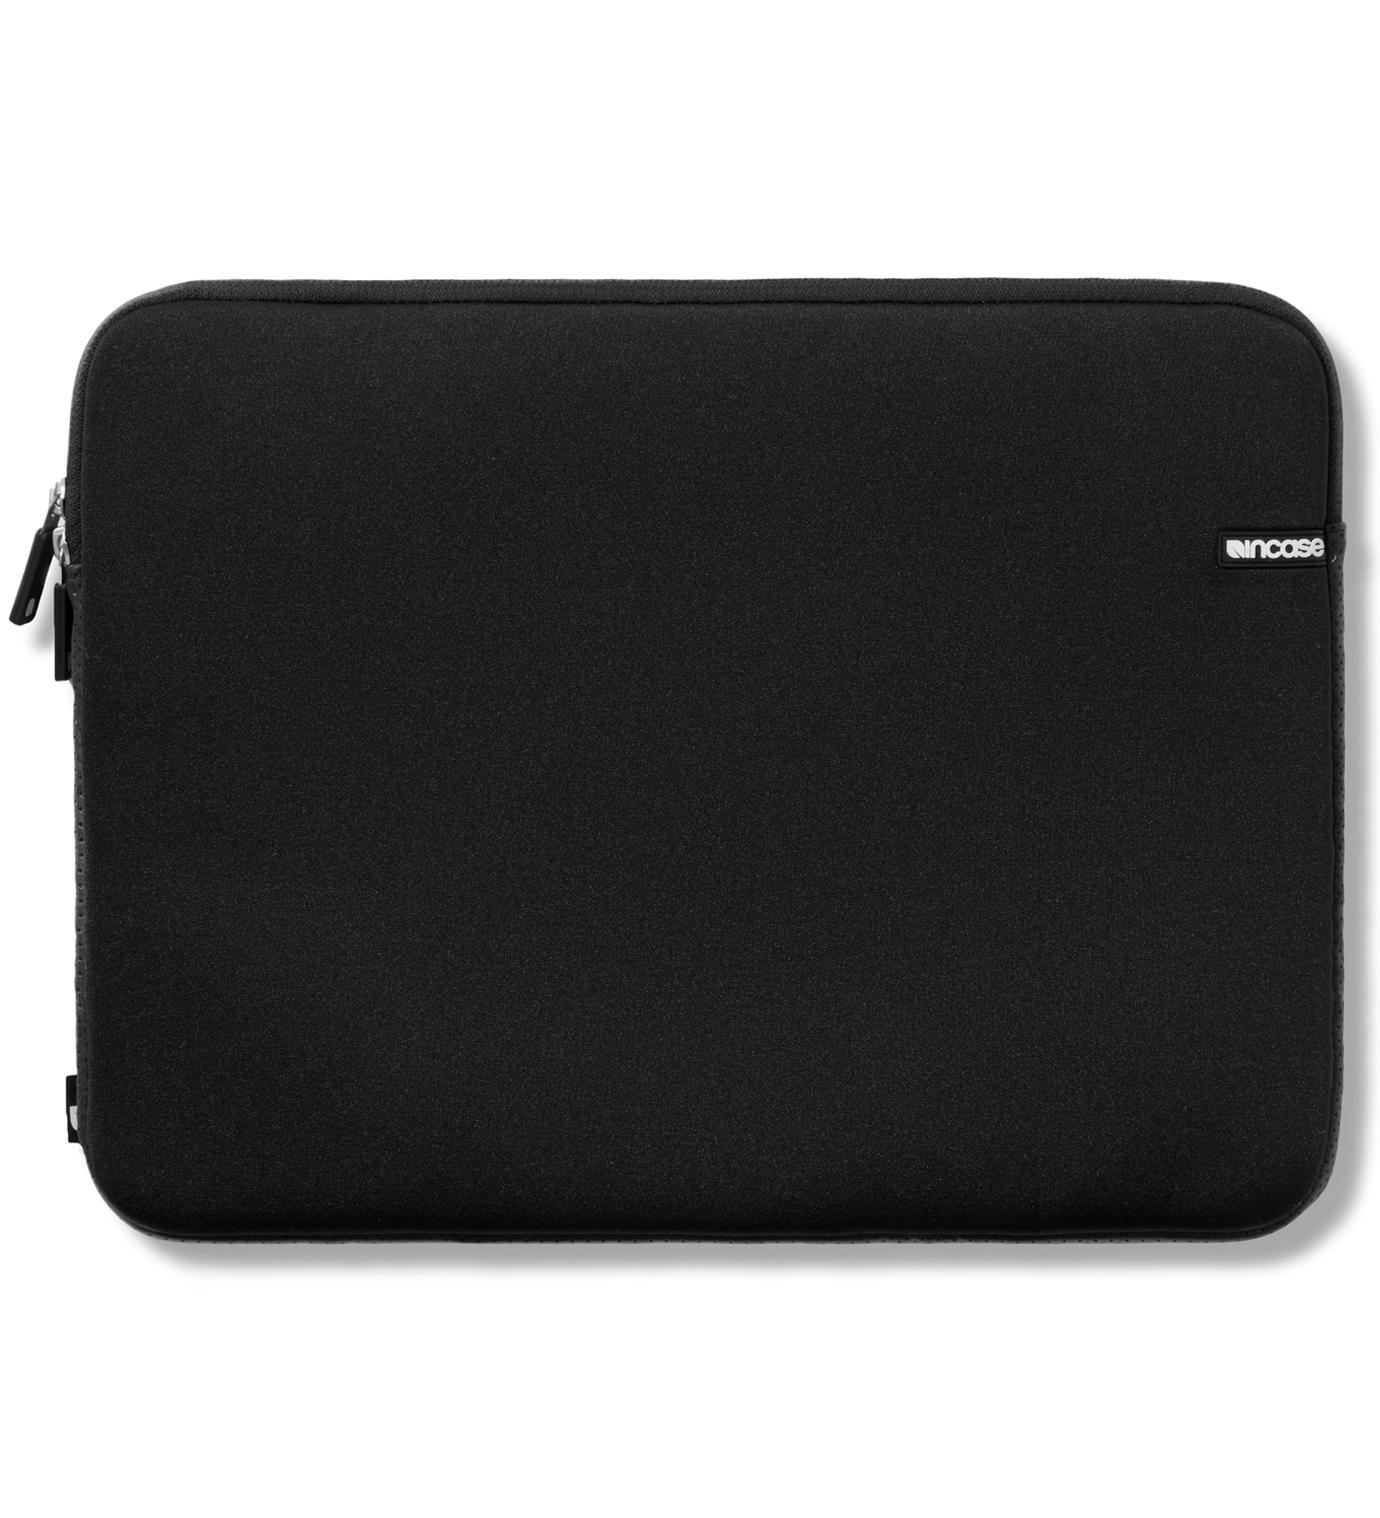 Incase Black Neoprene Sleeve for Macbook Pro 15""